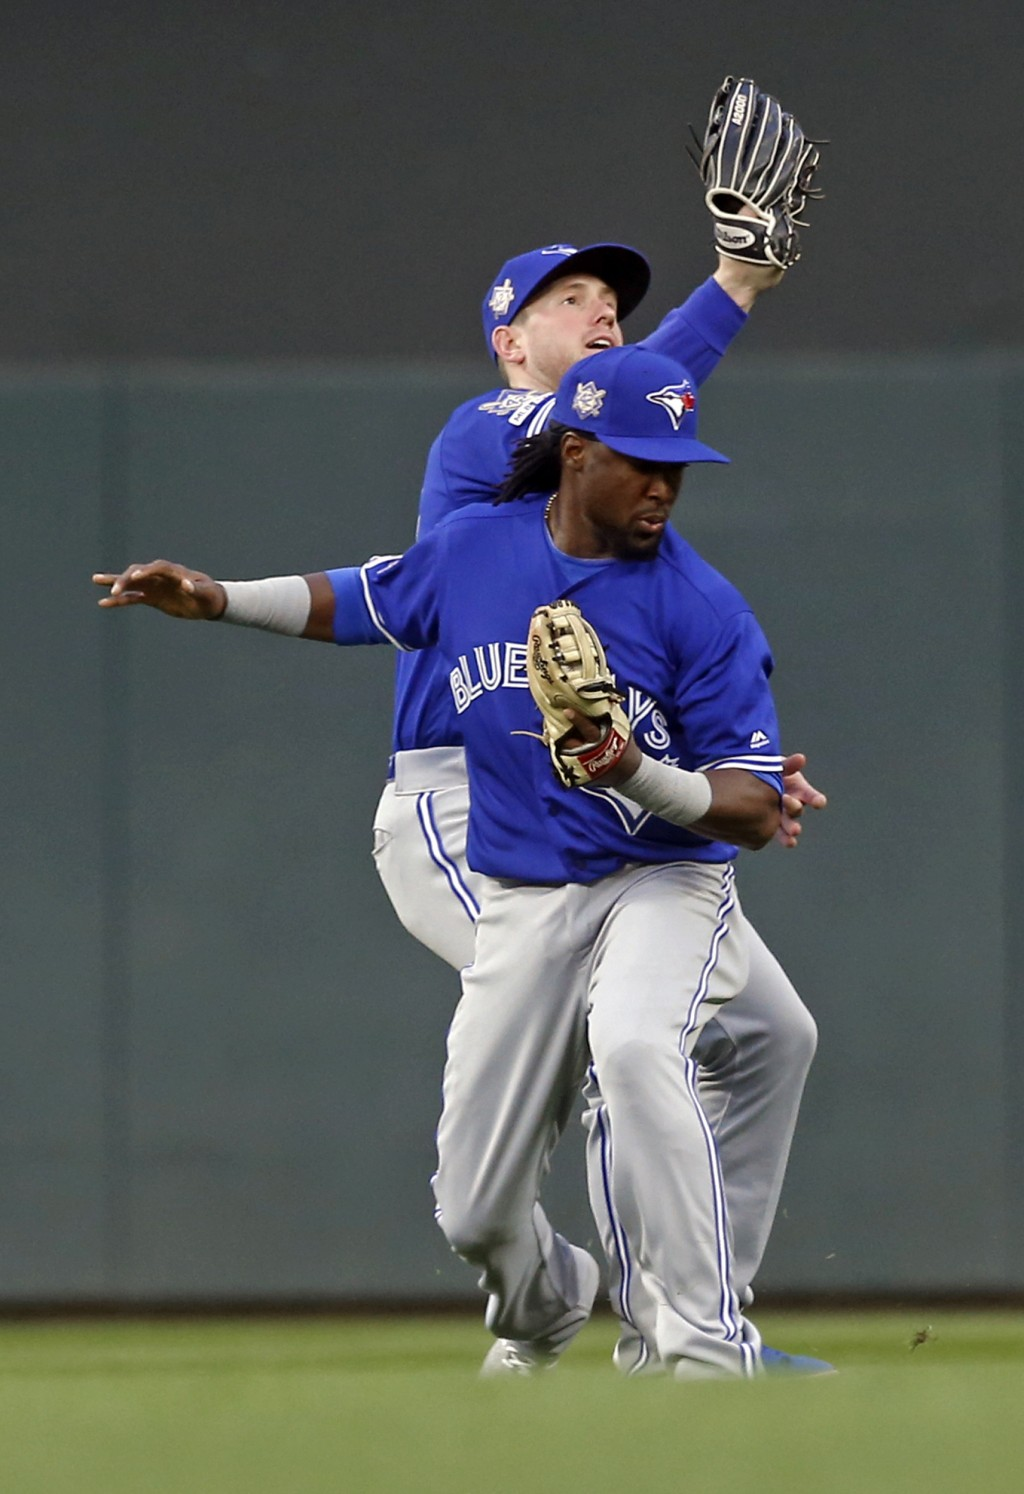 Toronto Blue Jays right fielder Billy McKinney, rear, catches a fly ball by Minnesota Twins' Mitch Garver after colliding with second baseman Alan Han